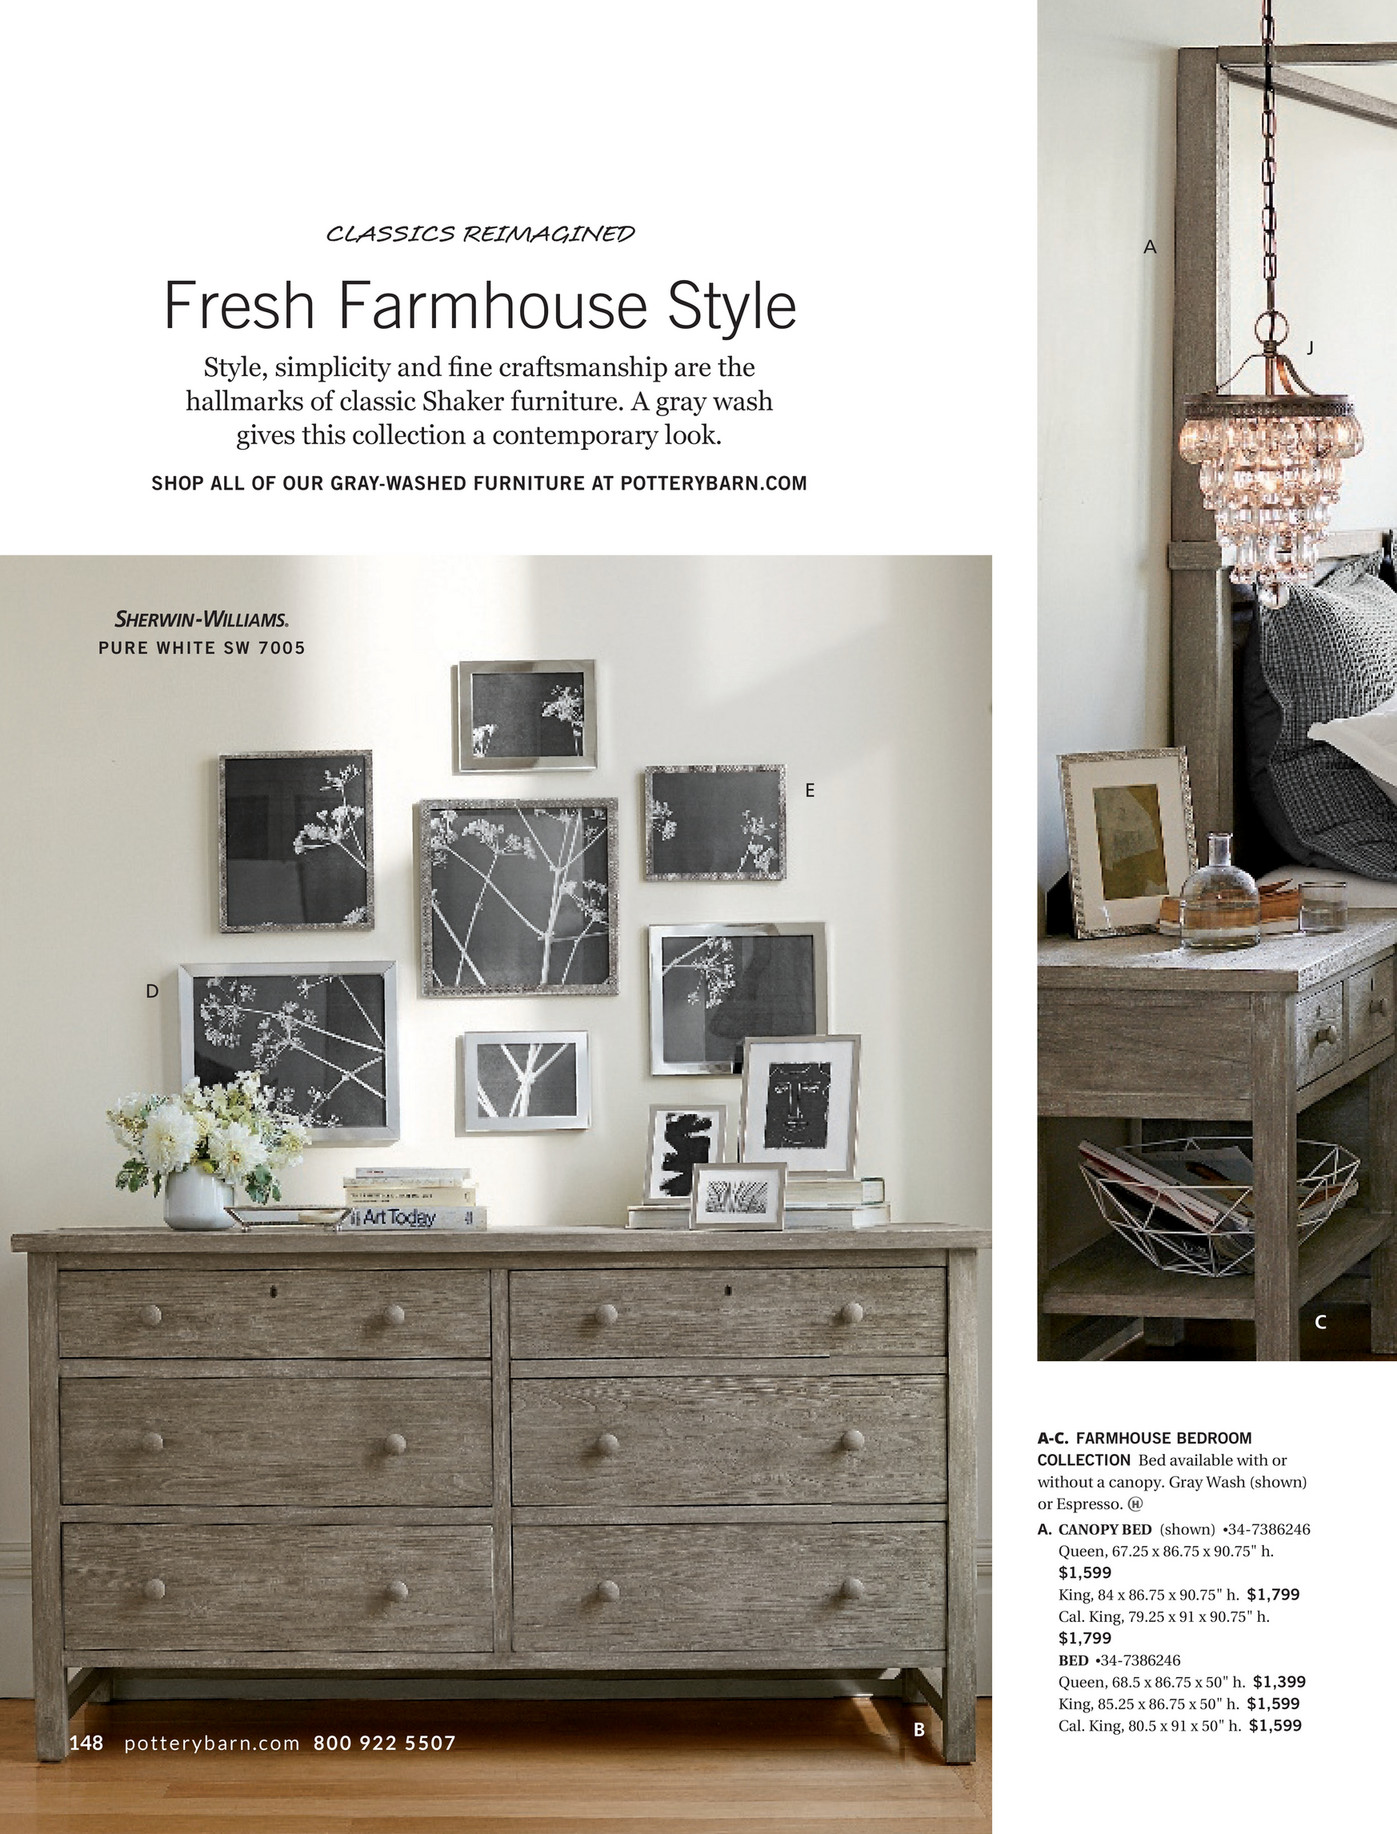 pottery barn - spring 2017 d1 - page 148-149